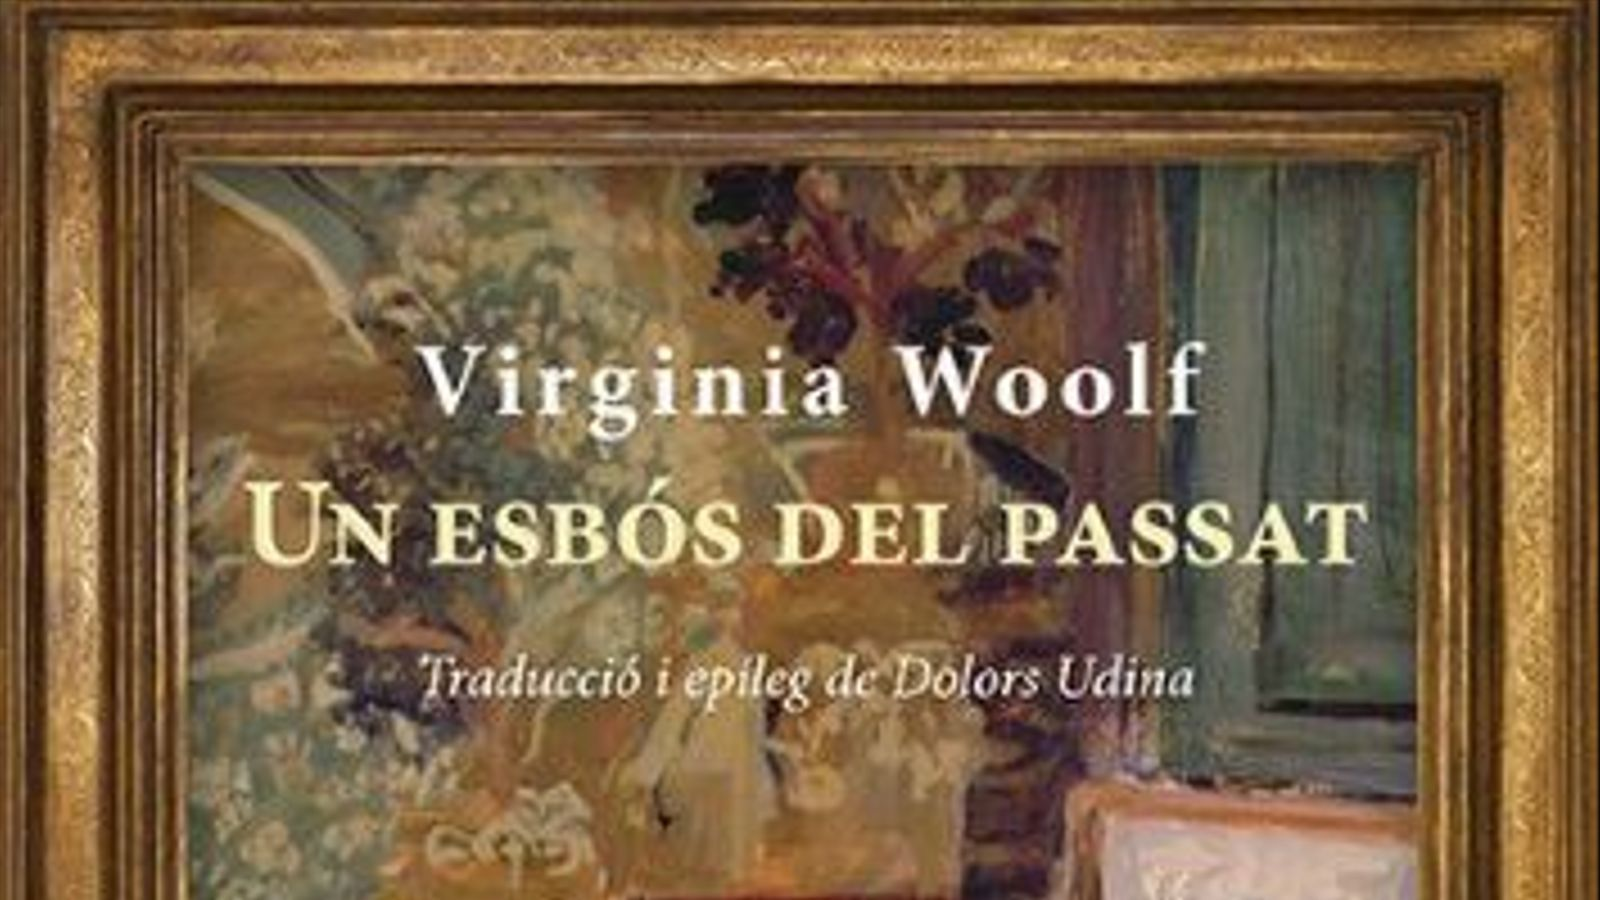 'Un esbós del passat', de Virginia Woolf